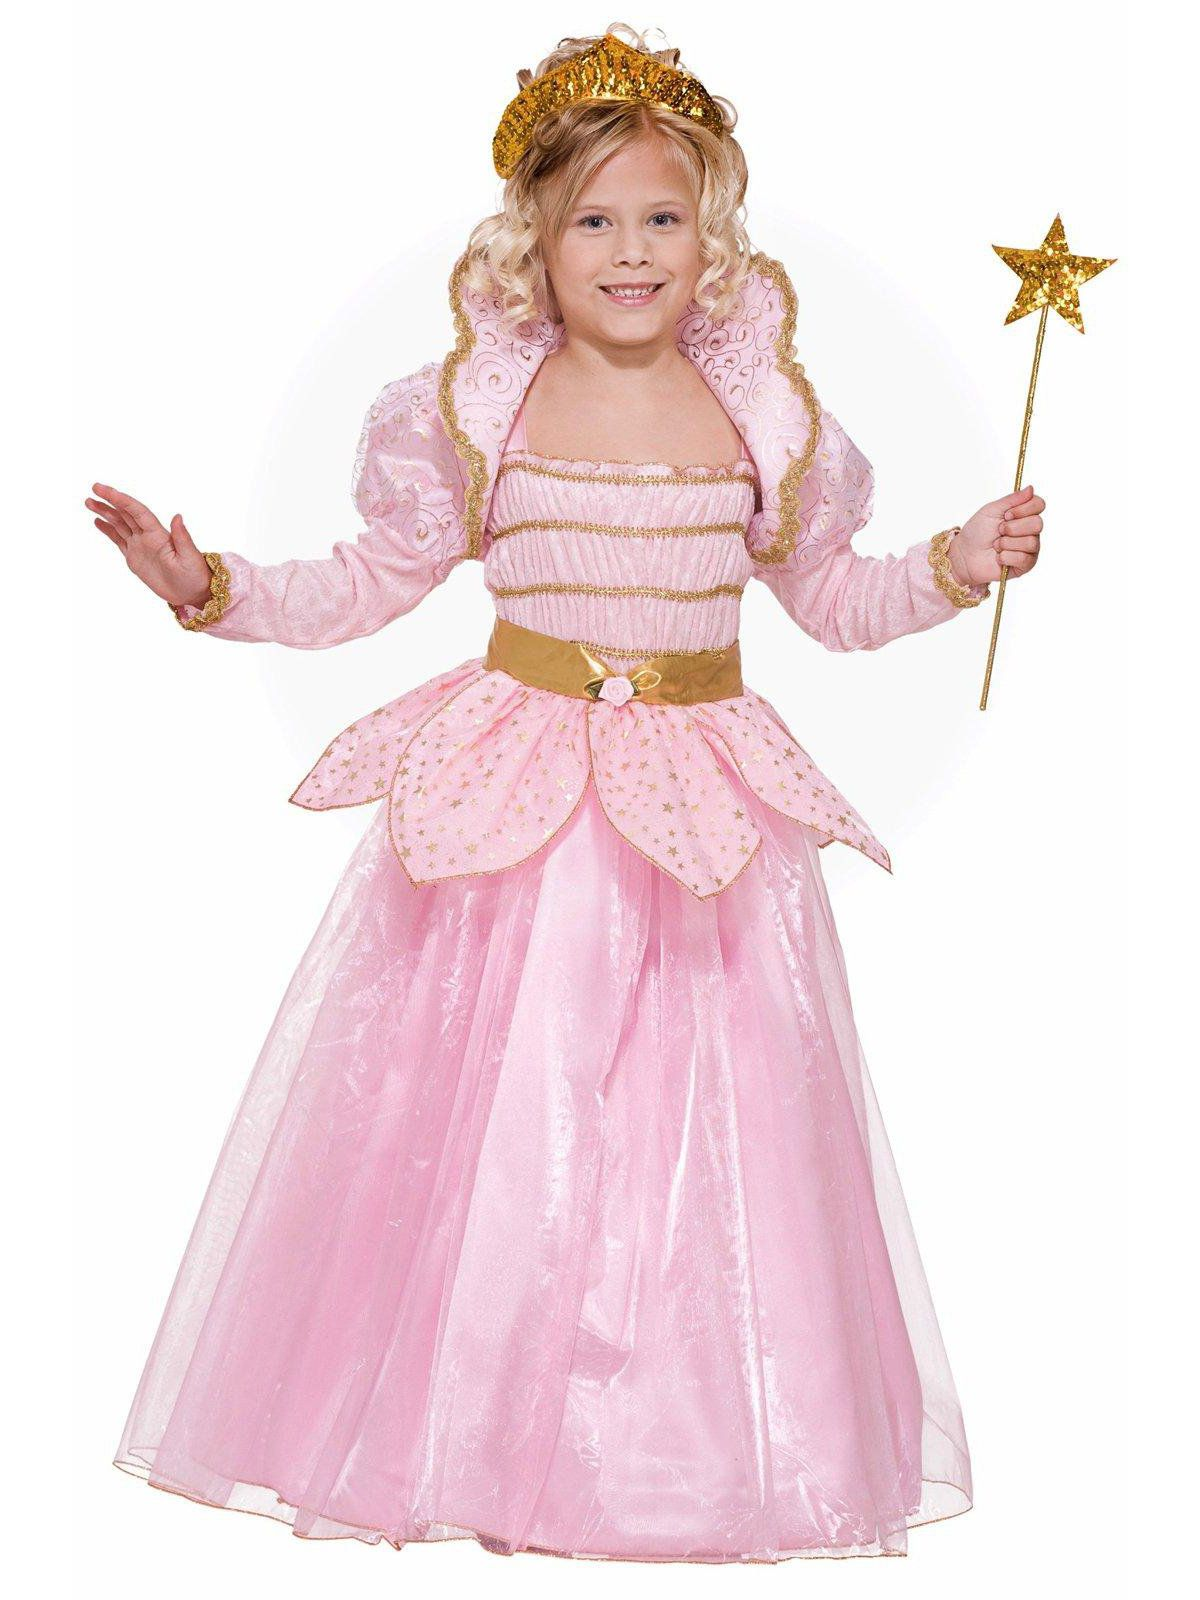 ad26c5123cc7 Little Pink Princess Costume For Children - Girls Costumes for 2018 ...